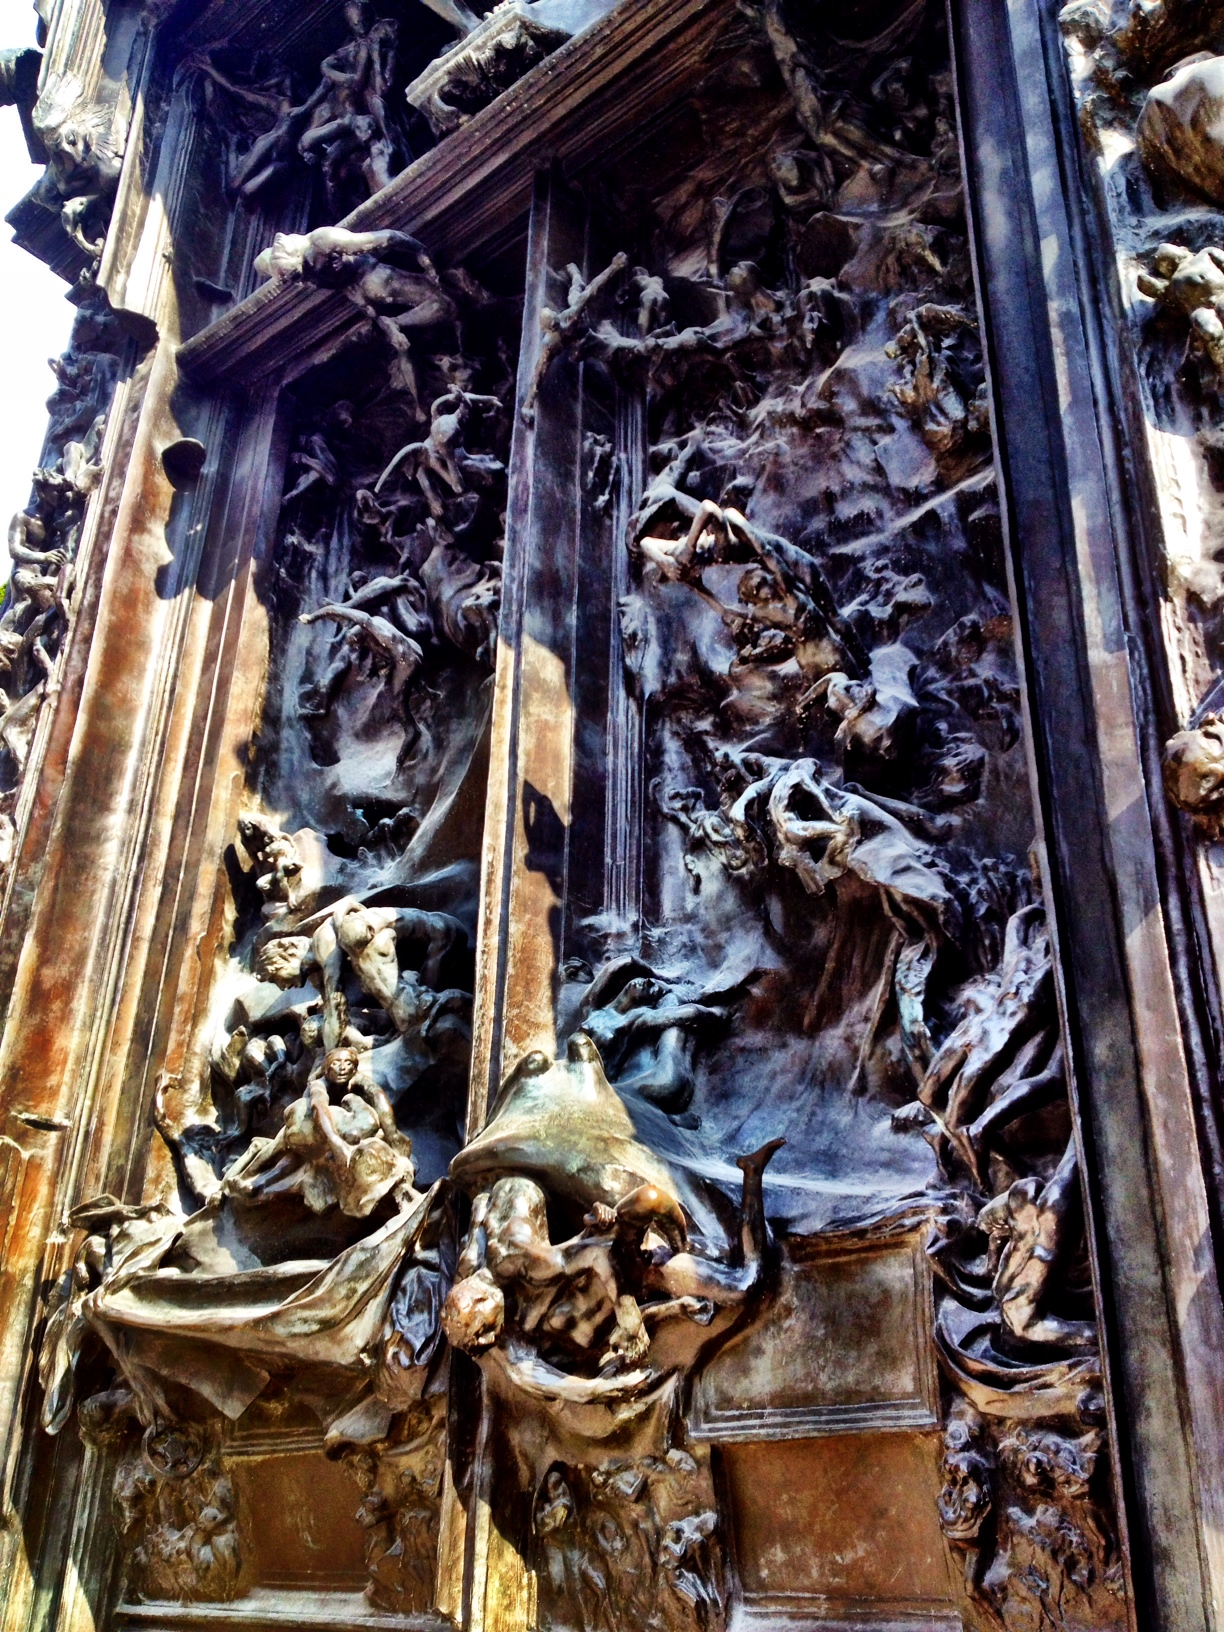 This is what Rodin thinks the gates of hell look like. Clearly, he never had to go through a TSA checkpoint.